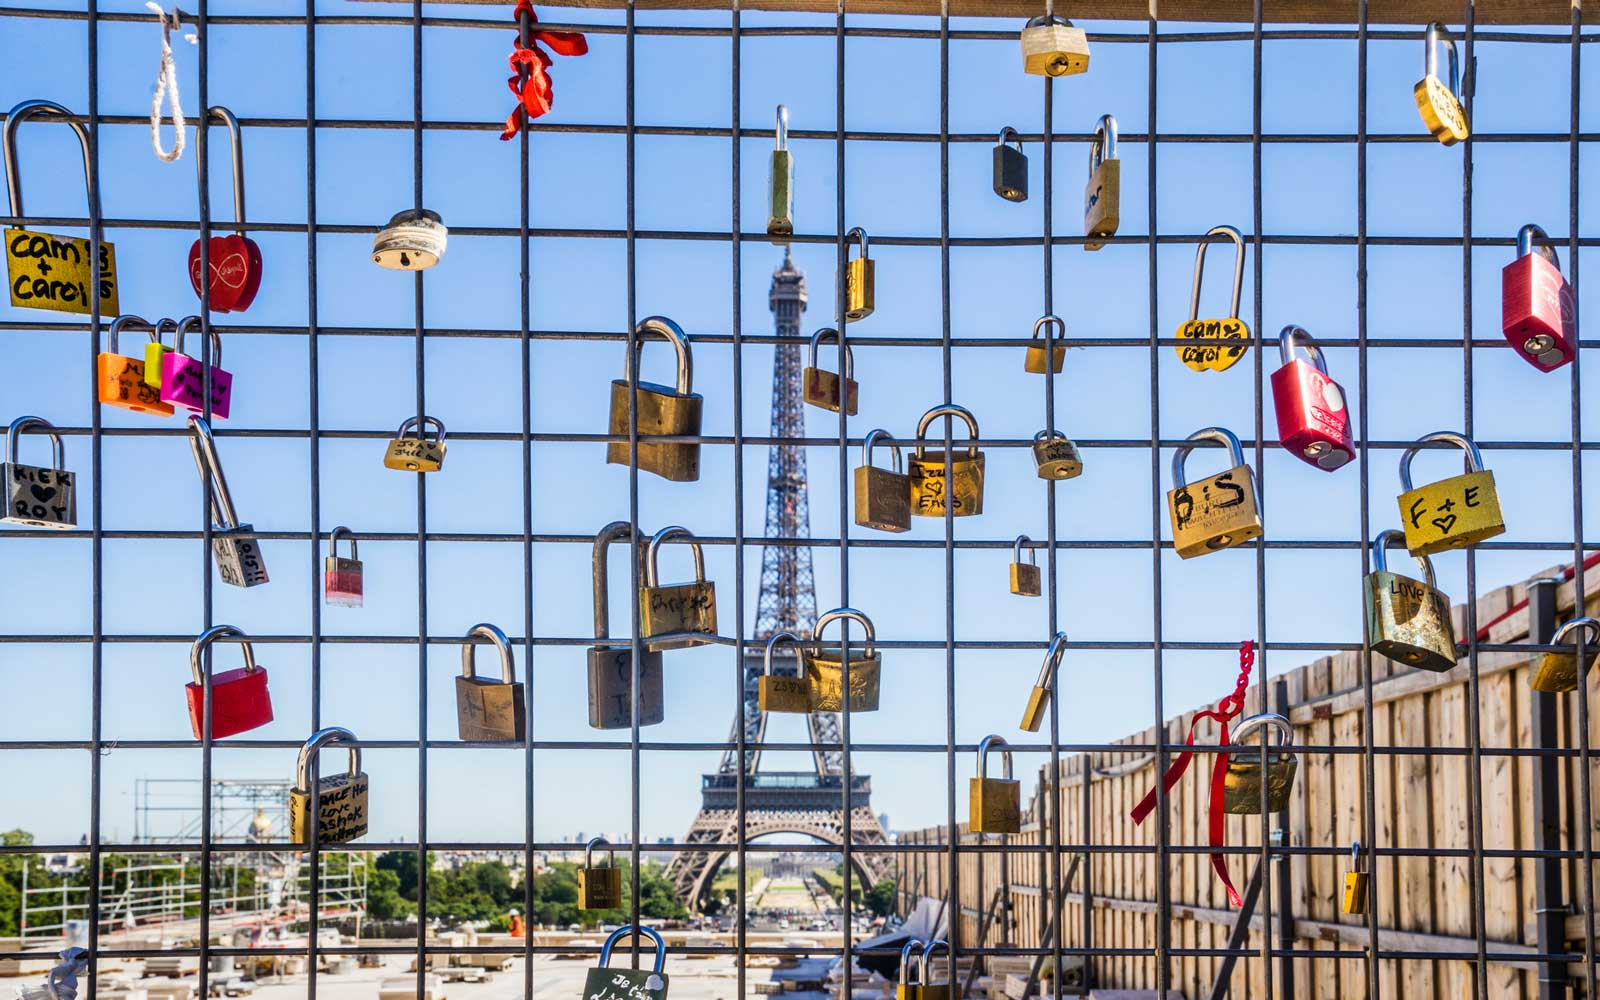 France, Paris, love locks on a construction fence at the Esplanade du Trocadéro, against the backdrop of the Eiffel Tower